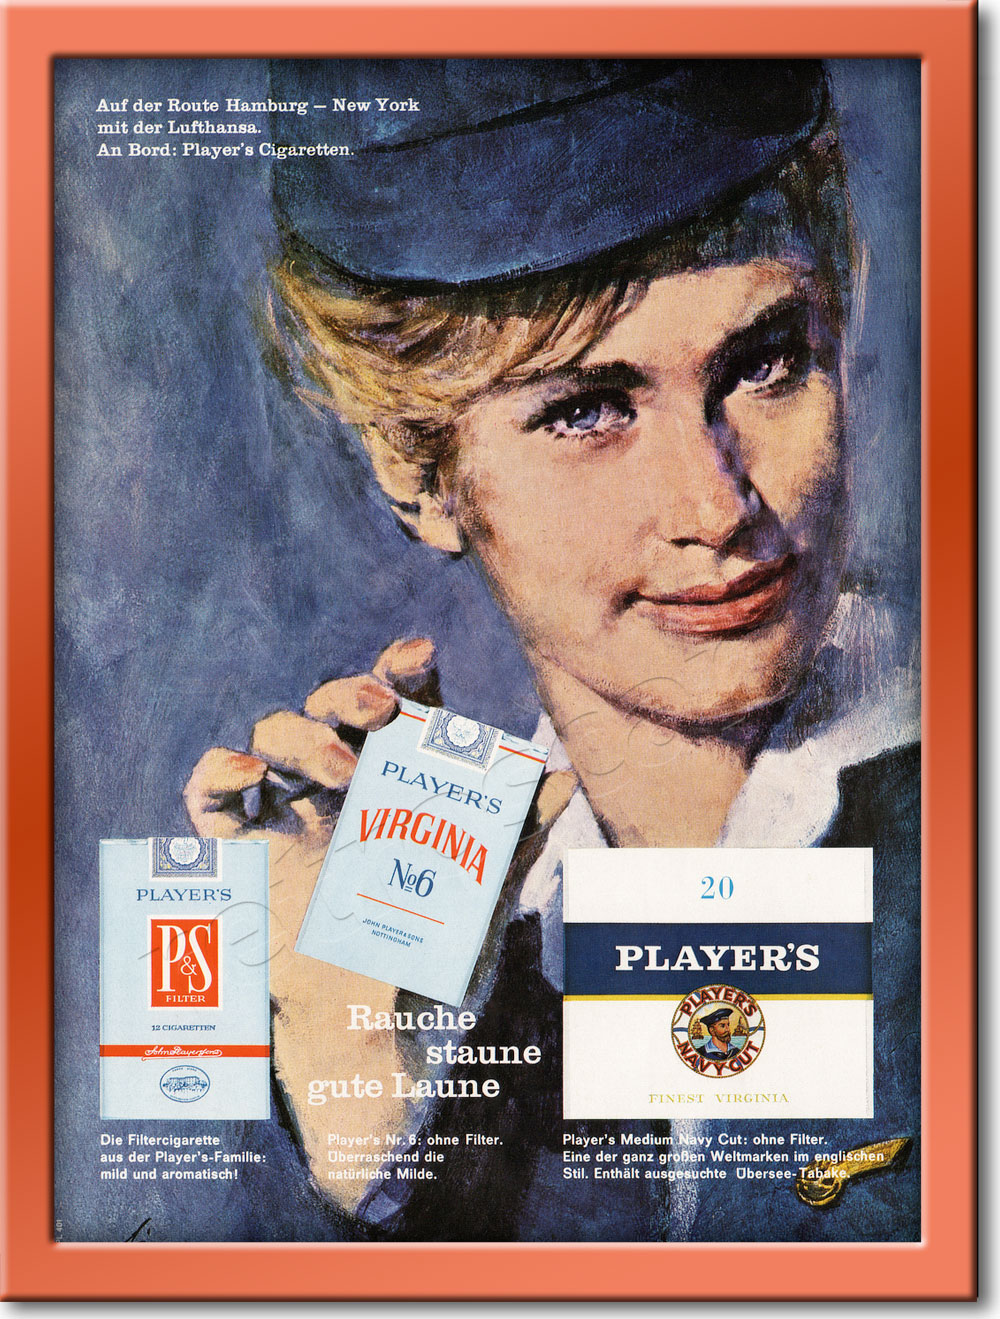 1964 Player's Cigarettes - framed preview retro